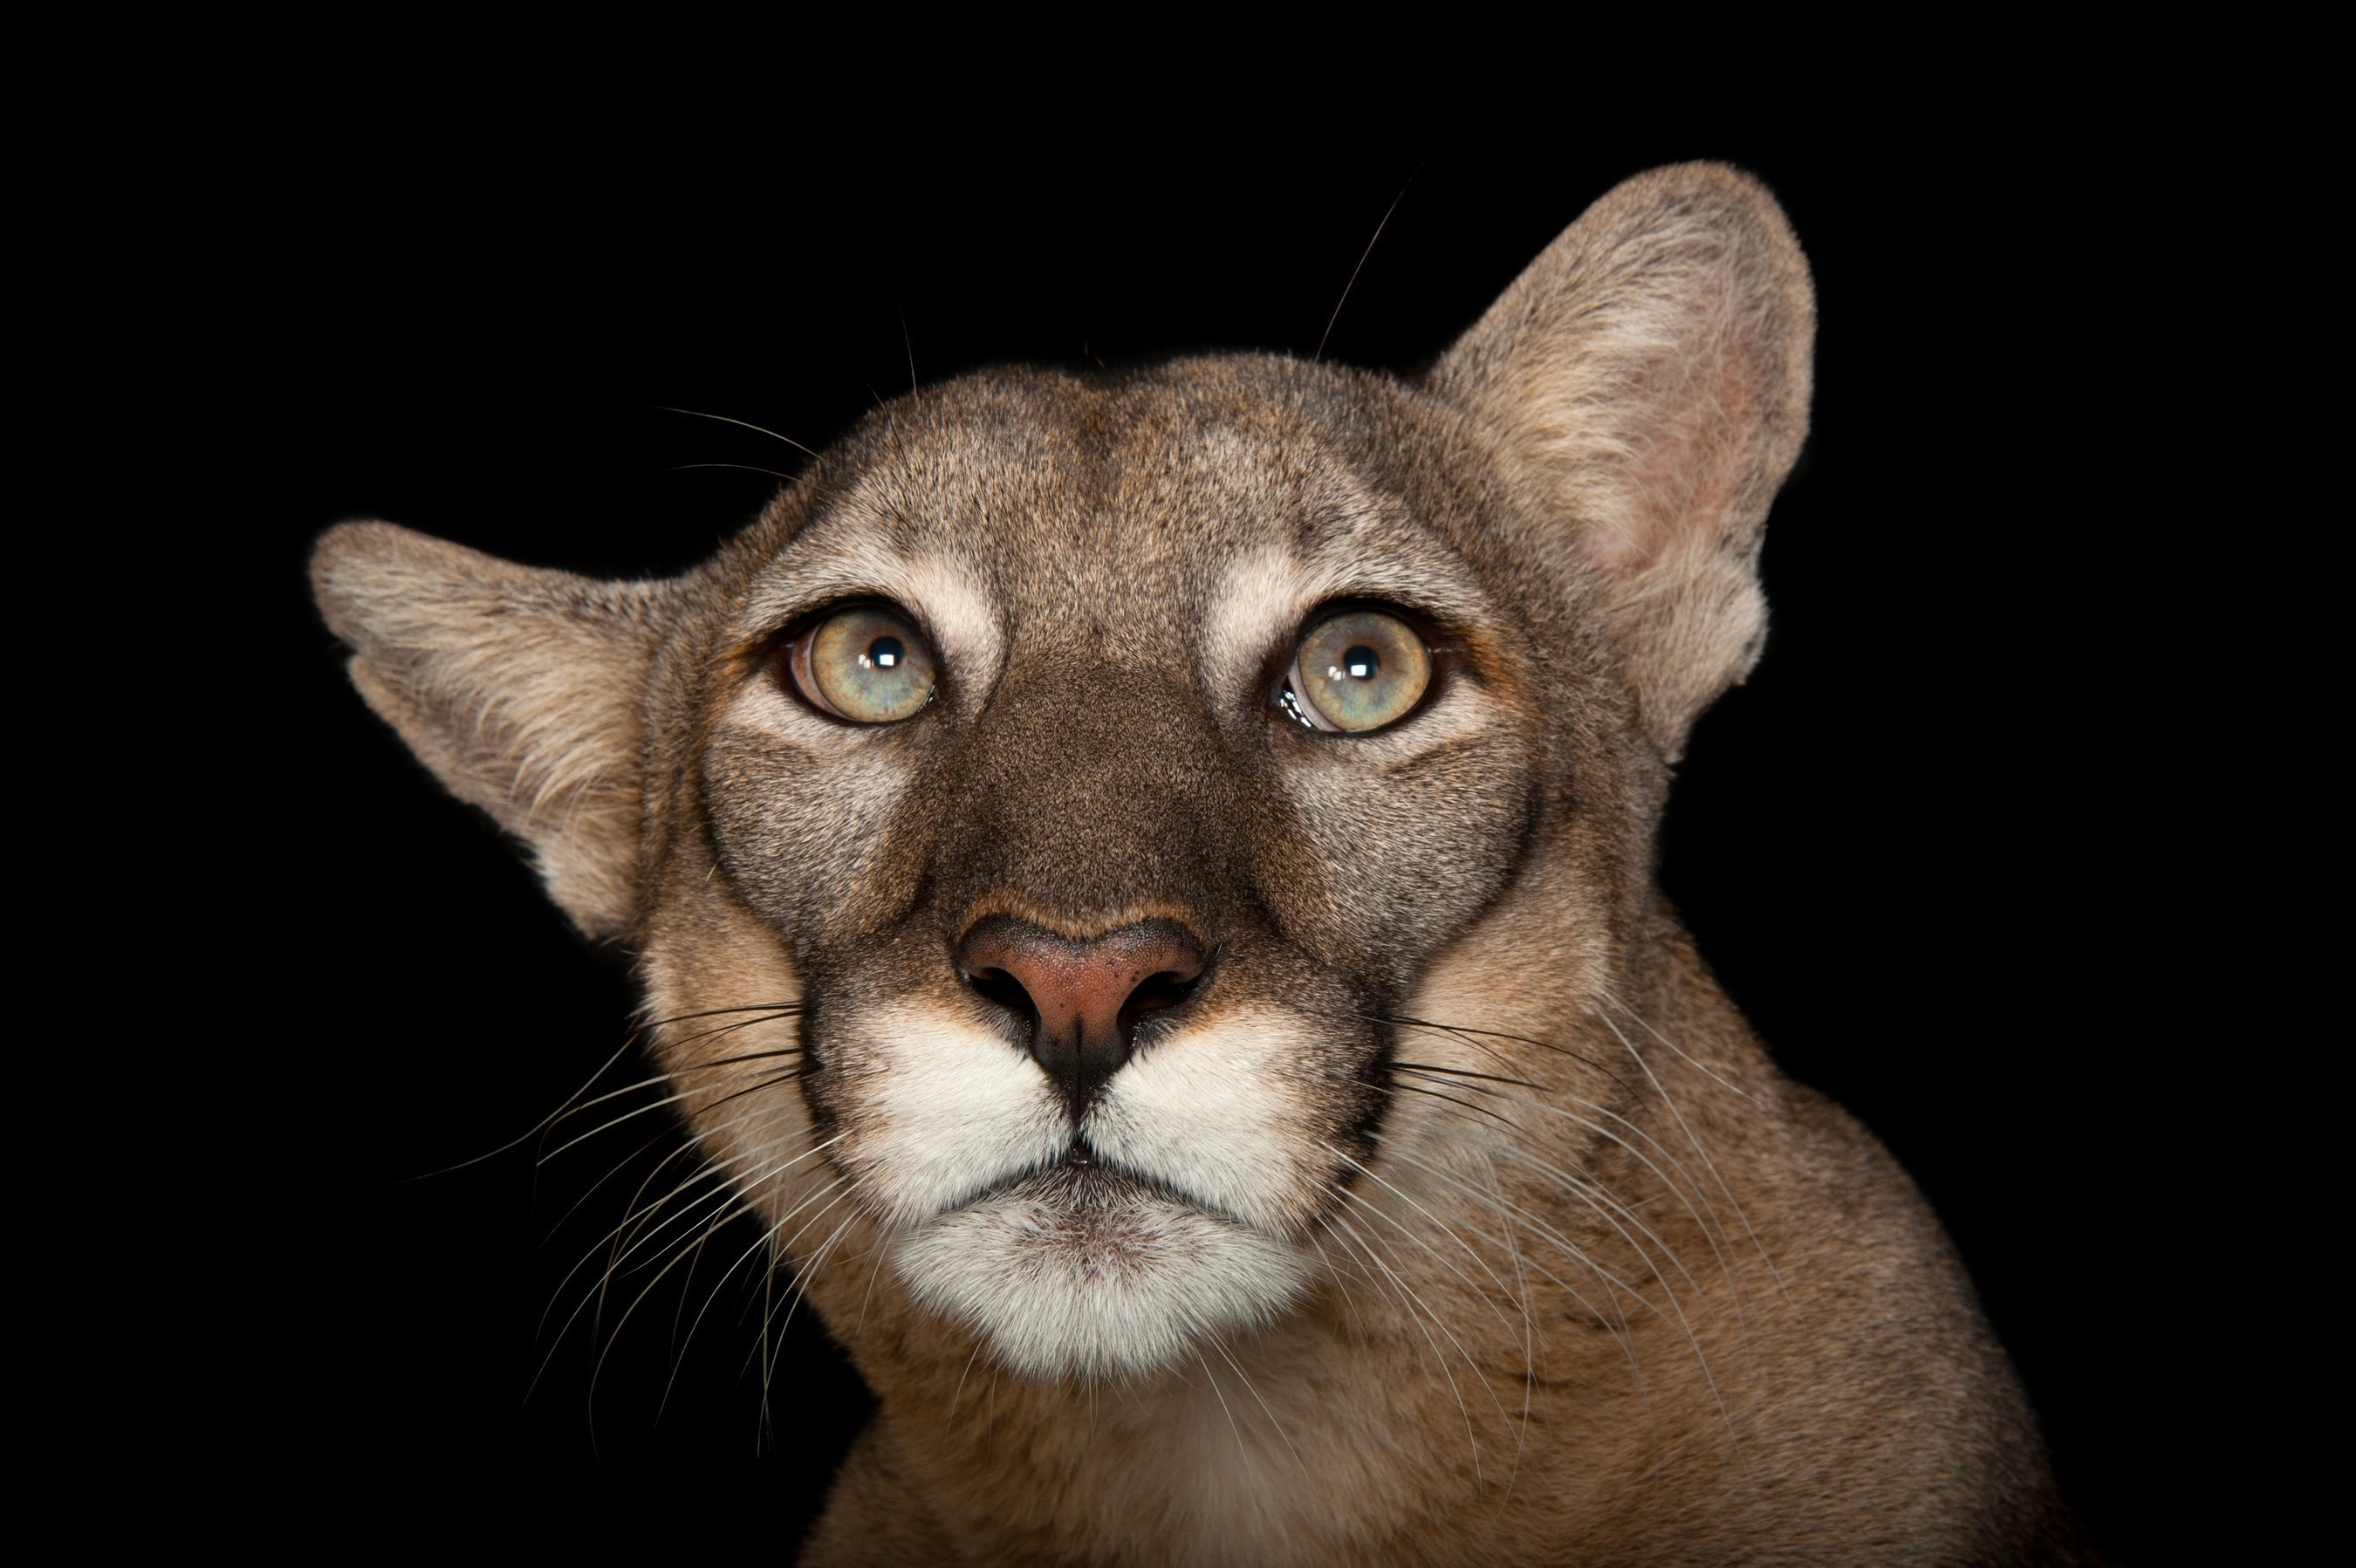 A Florida panther (Puma concolor coryi) named Lucy at Tampa's Lowry Park Zoo. Credit: Joel Sartore/National Geographic Photo Ark